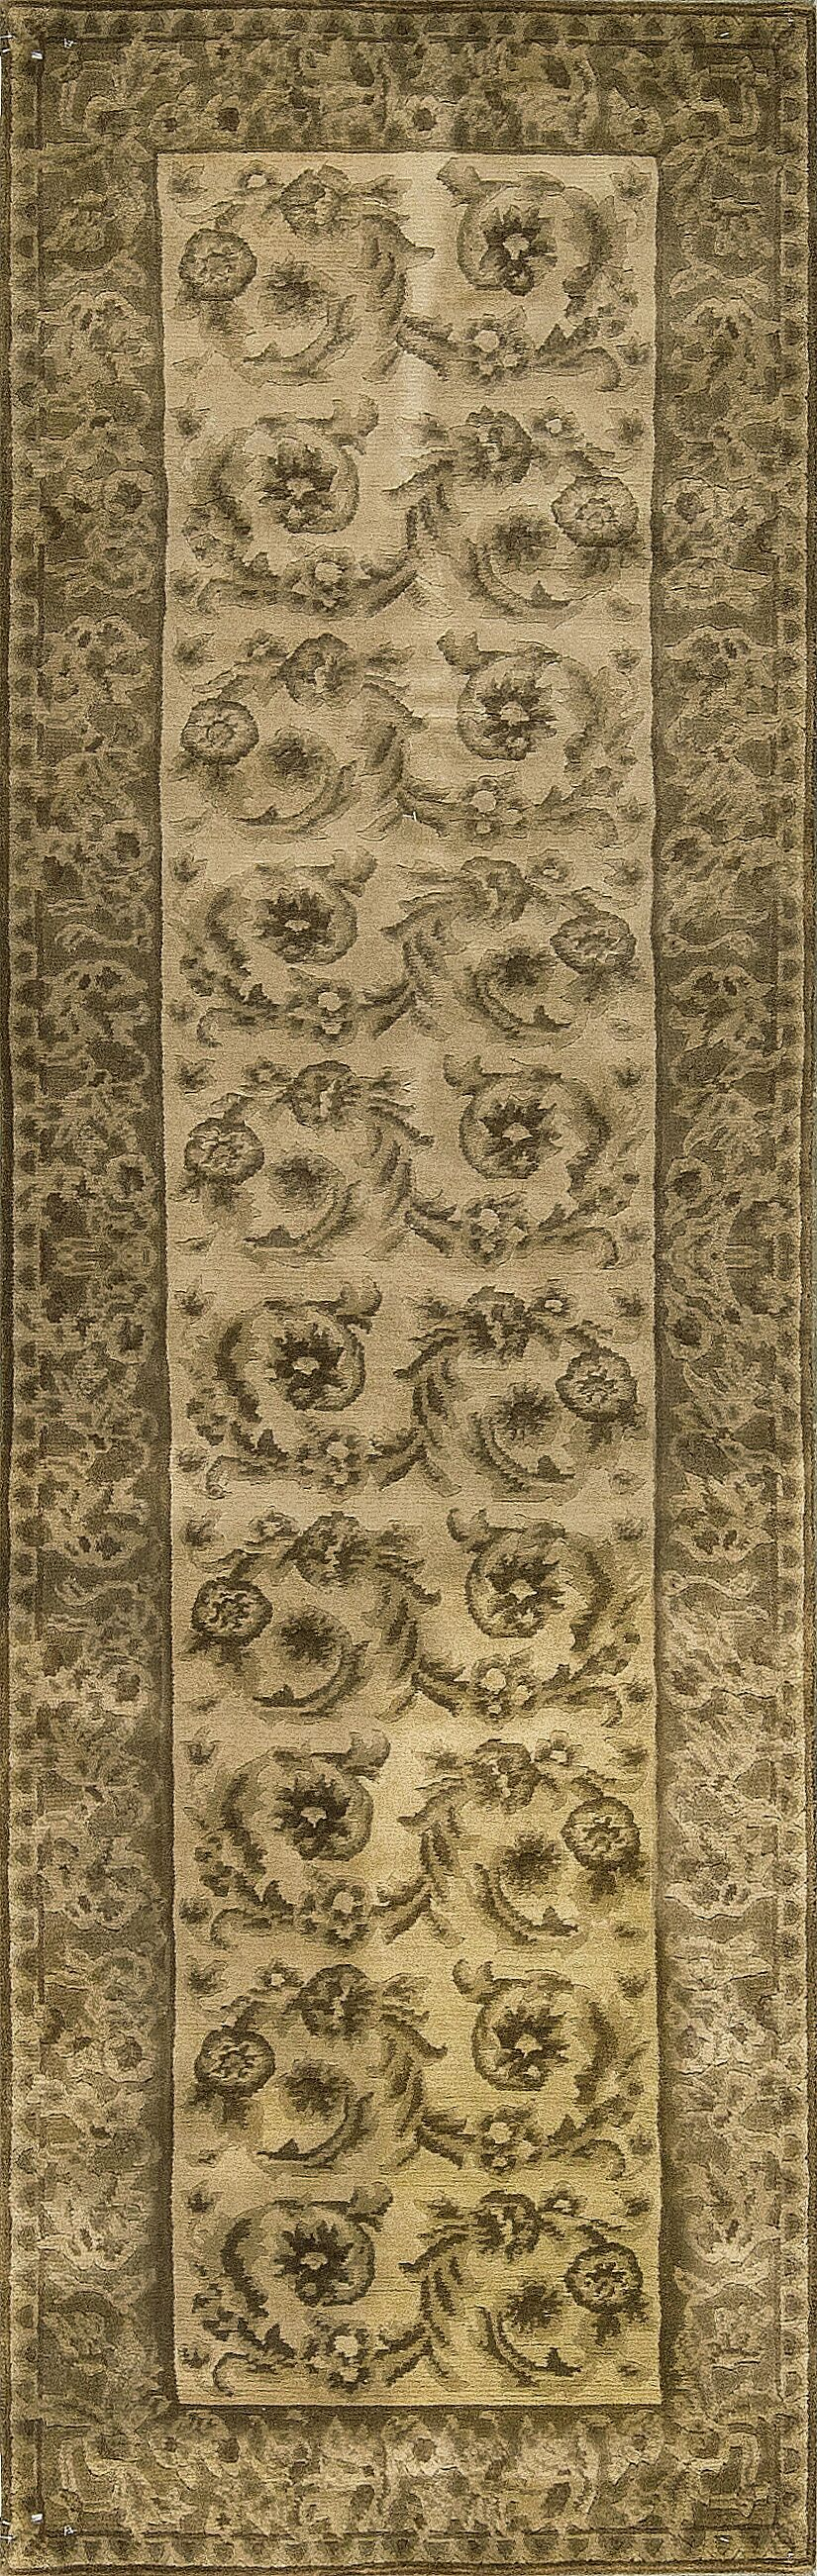 One-of-a-Kind Hand-Knotted Wool Beige Indoor Area Rug